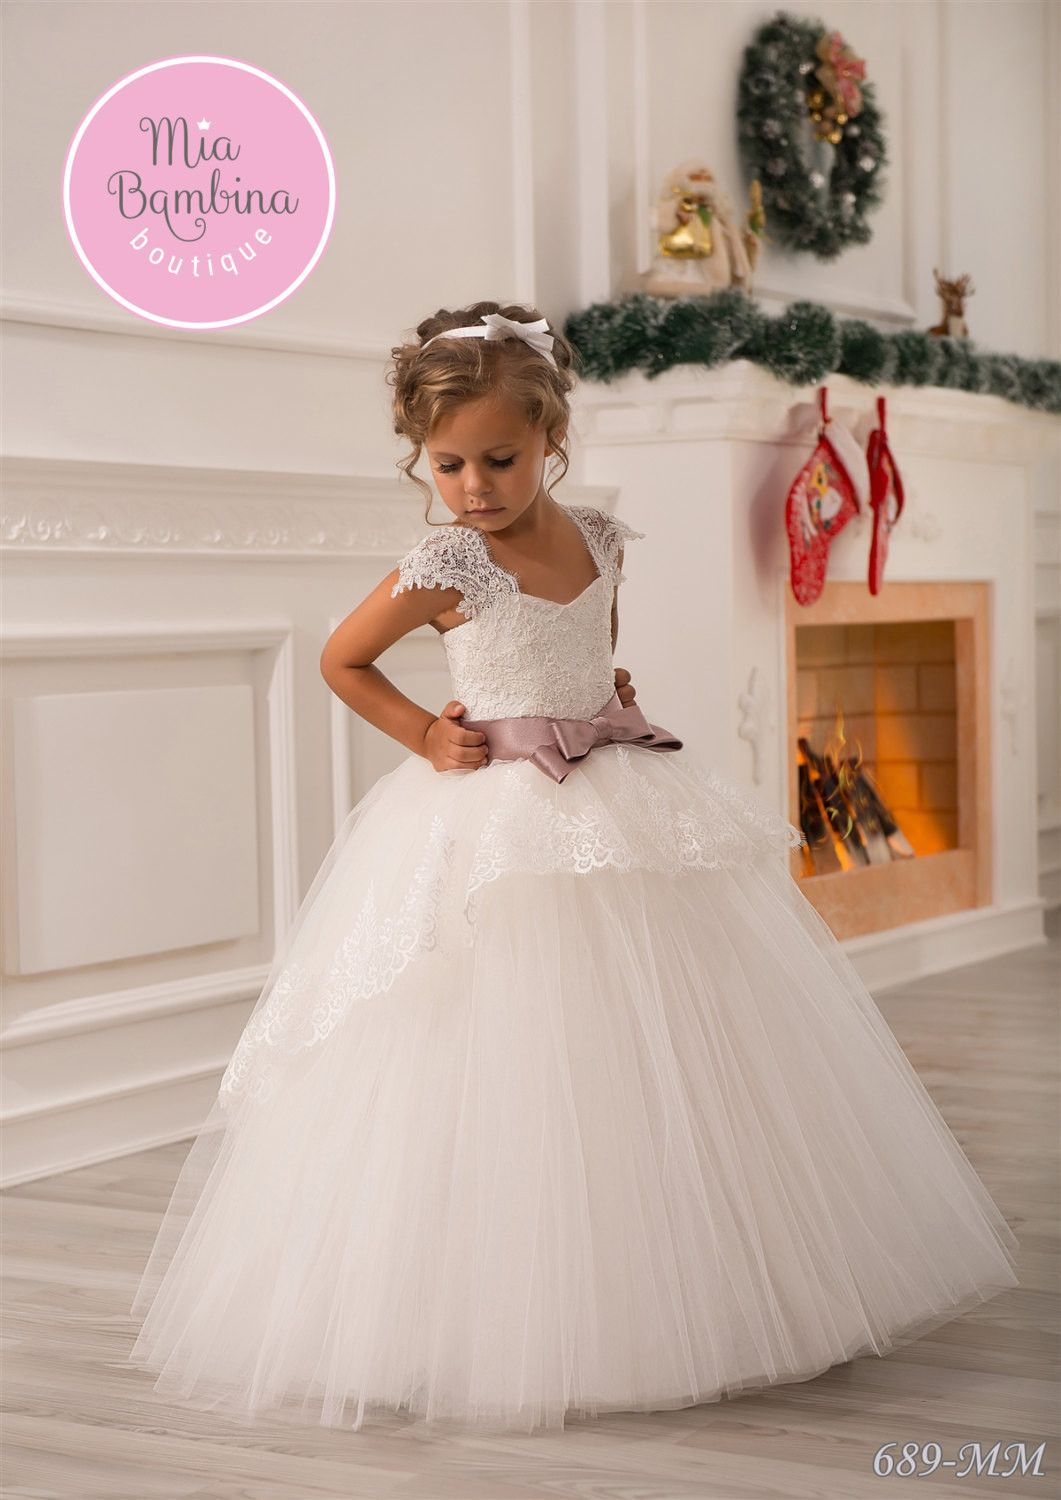 8ca0cdf4 A beautiful princess dress for flower girls from 1 year to 14 years old.  The tulle lace gown features a sweetheart lace corset bodice, wide lace  straps, ...